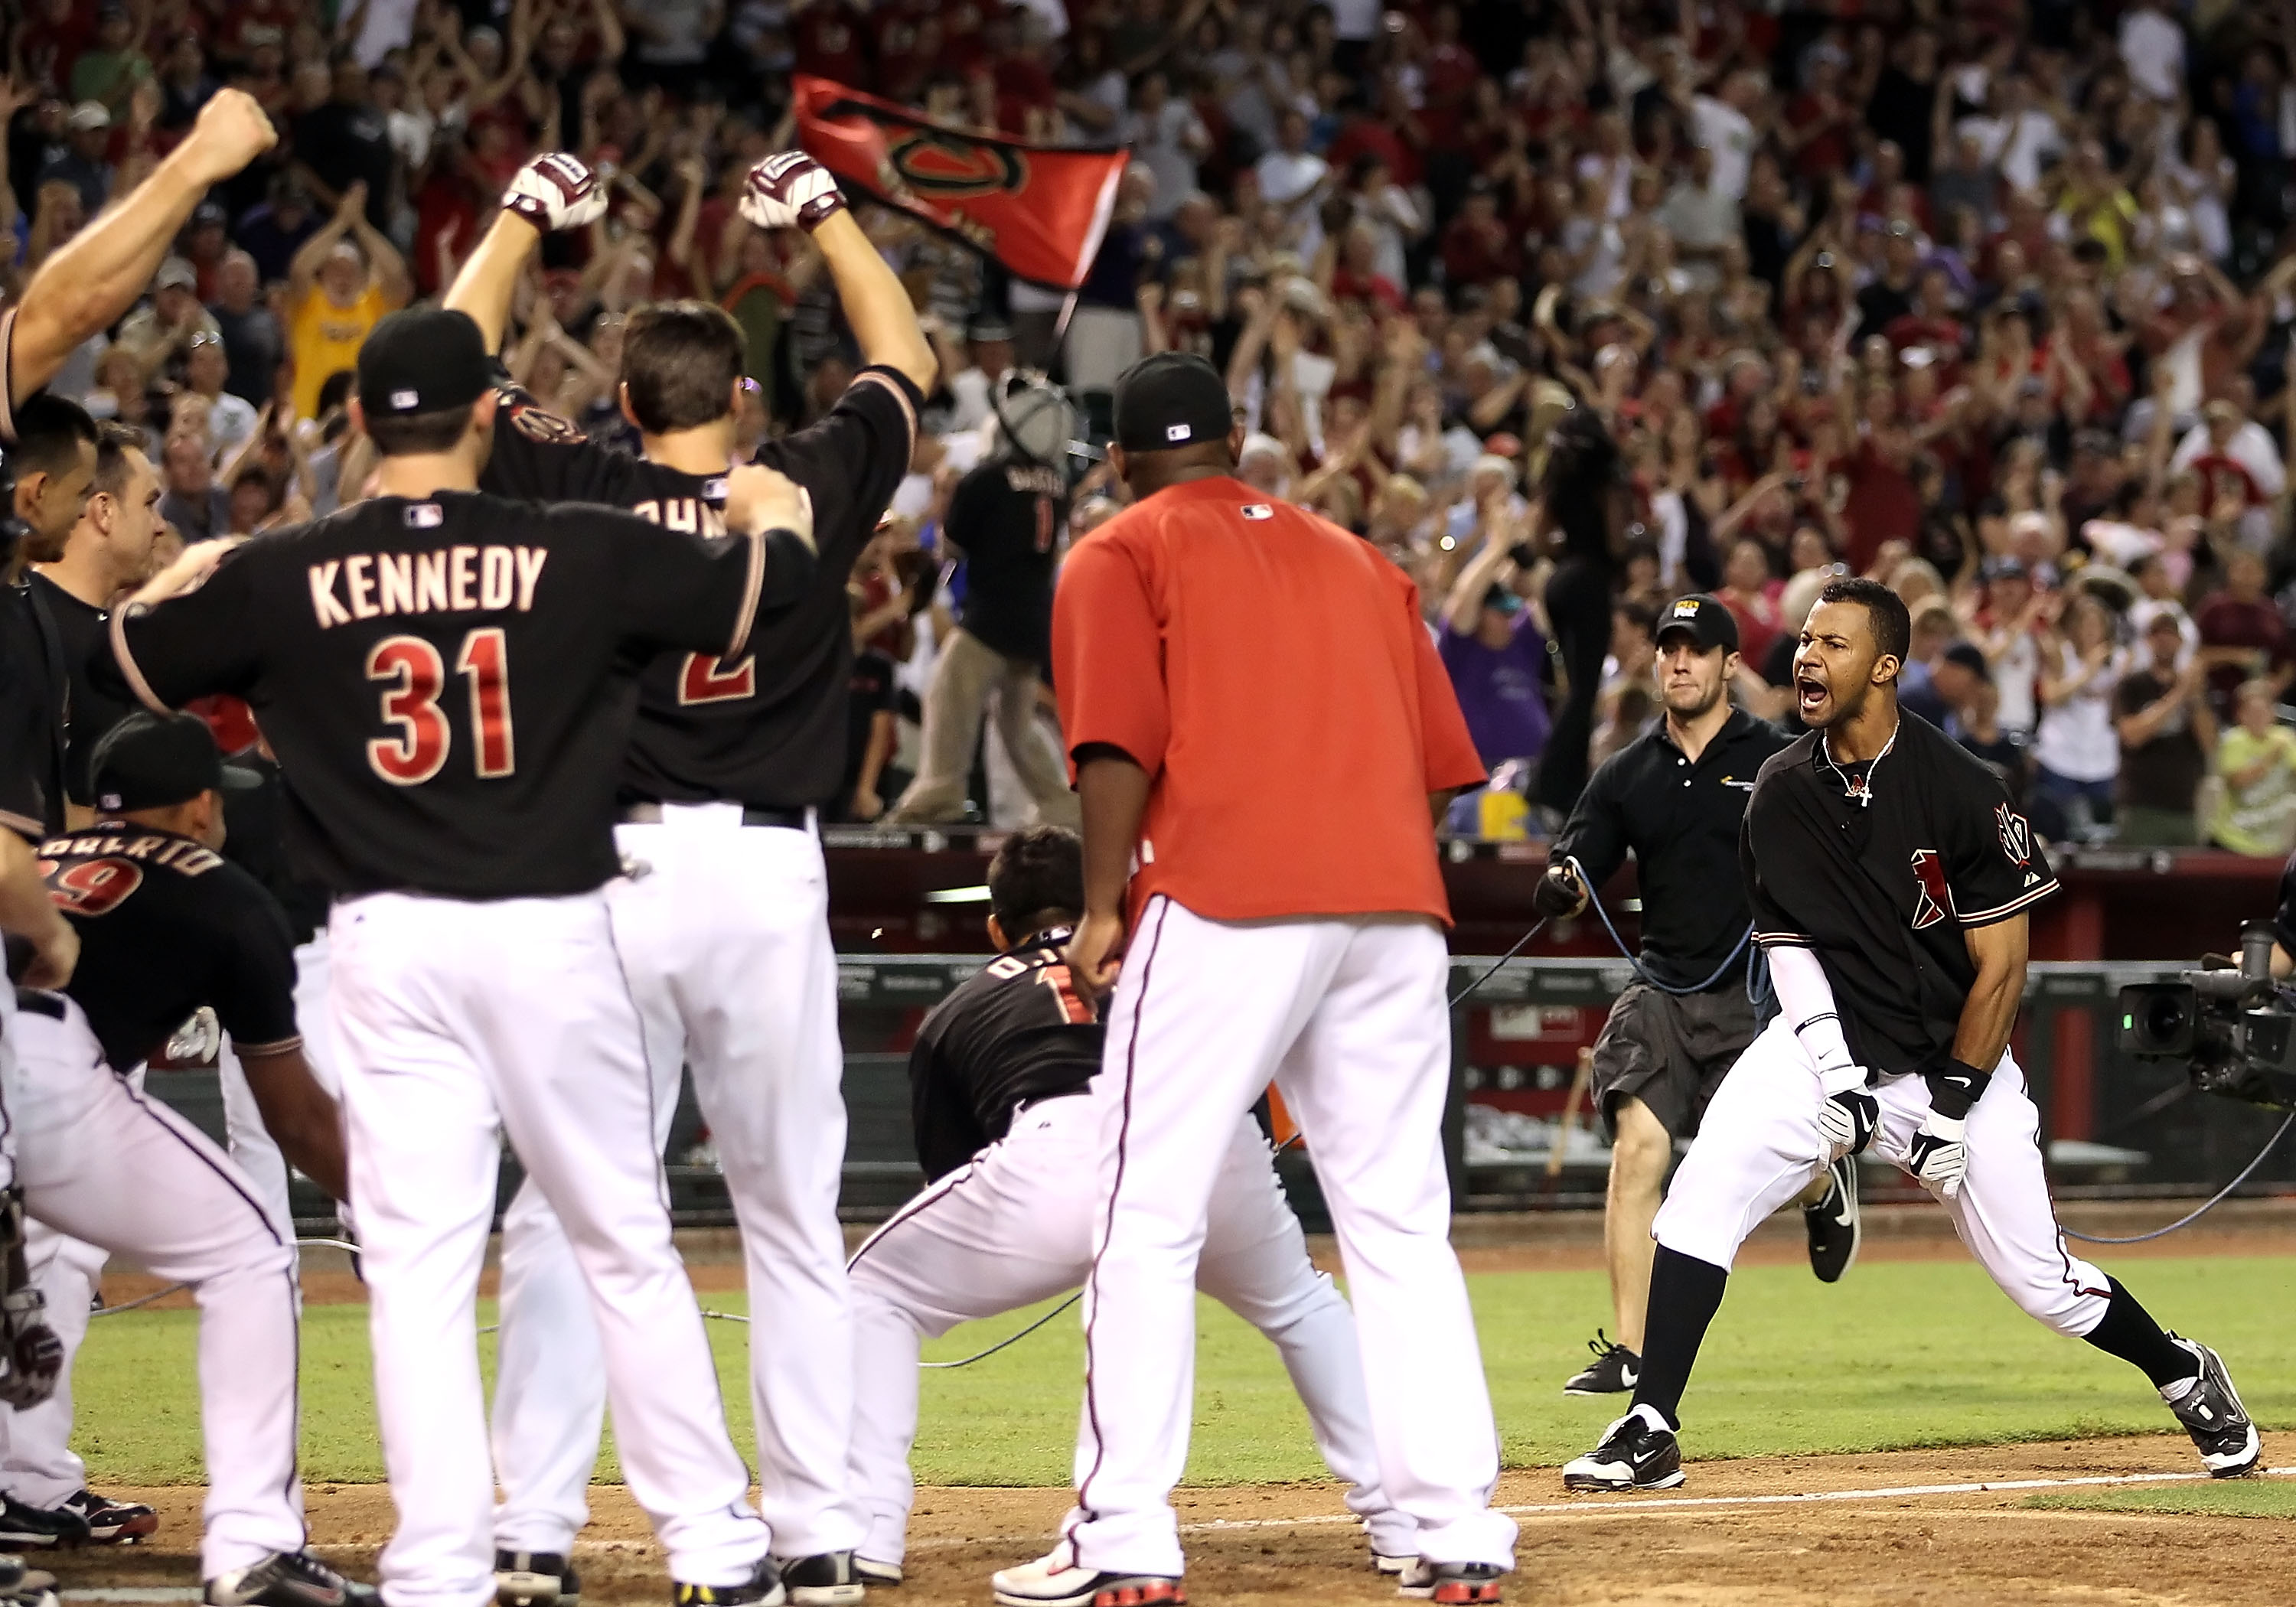 The Arizona Diamondbacks underacheived last year.  Can they rebound with a solid 2011?